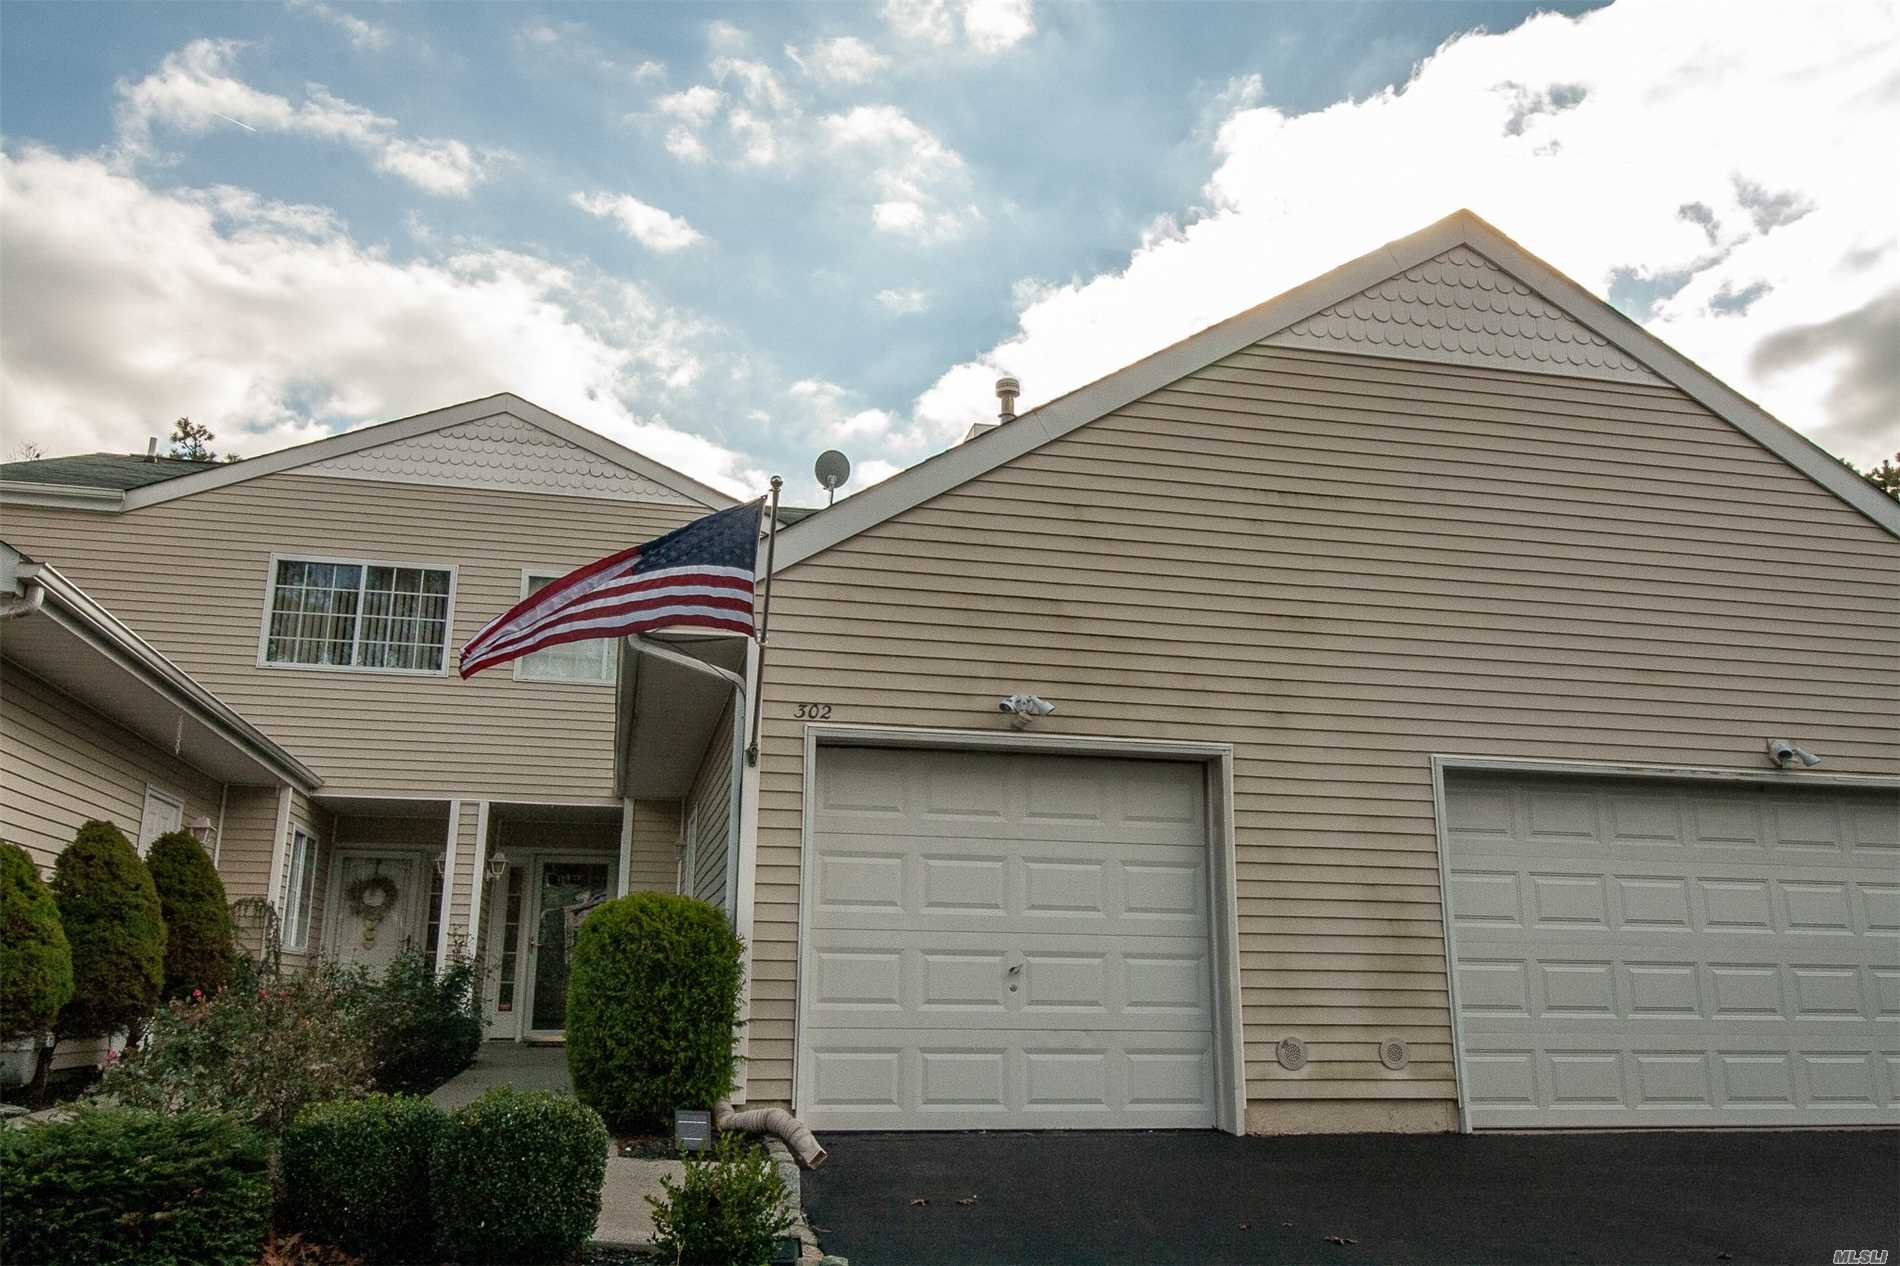 Property for sale at 302 Prairie Ct, Manorville,  NY 11949